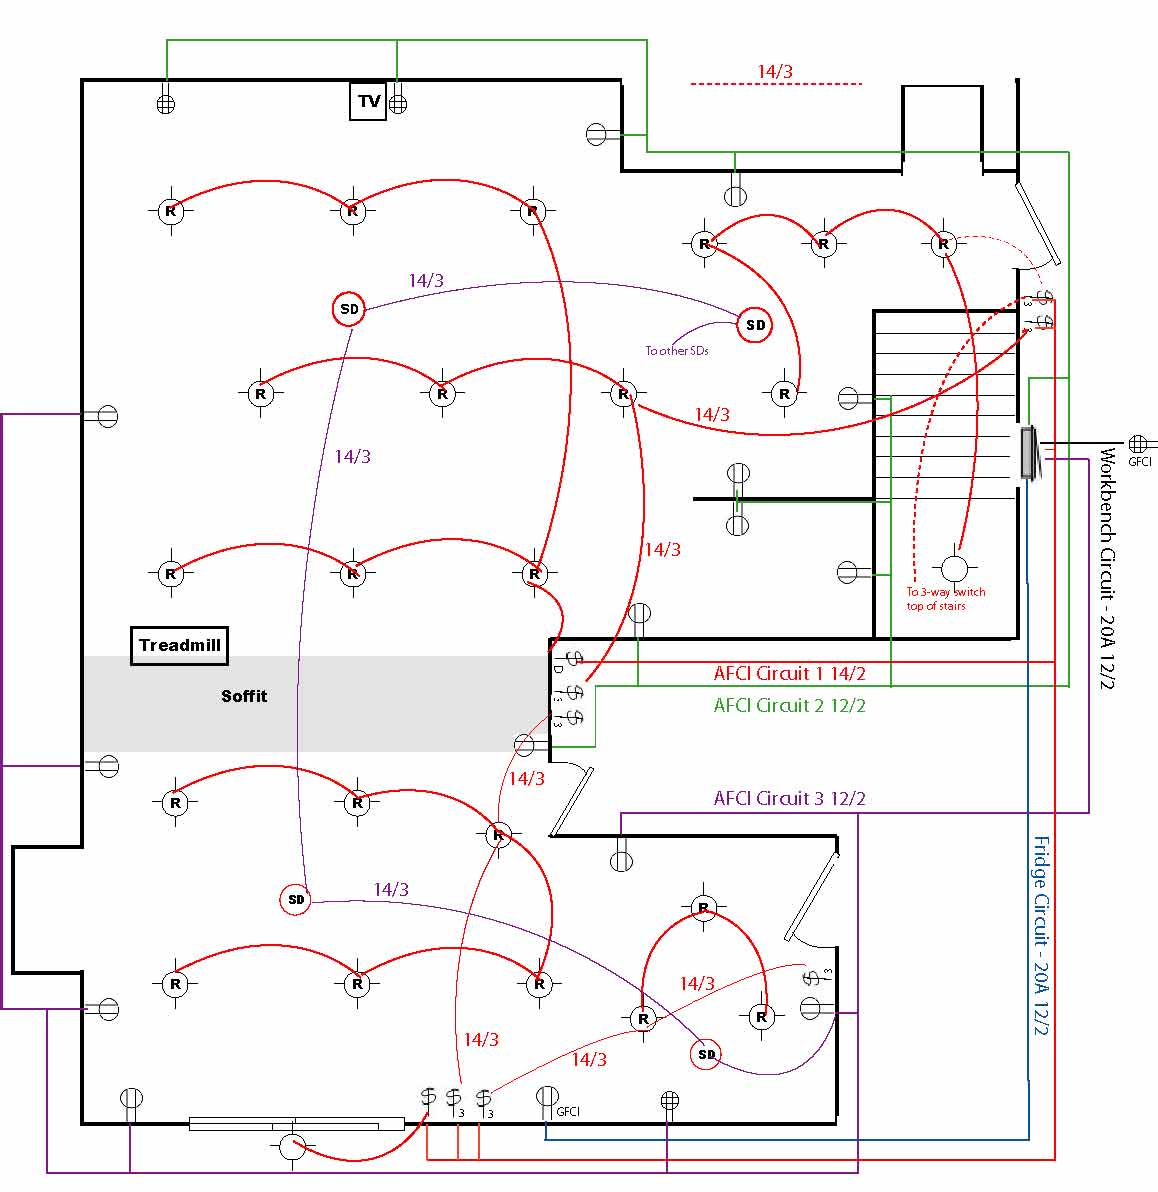 hight resolution of typical home wiring diagram diagram data schema typical mobile home wiring diagram typical home wiring diagram